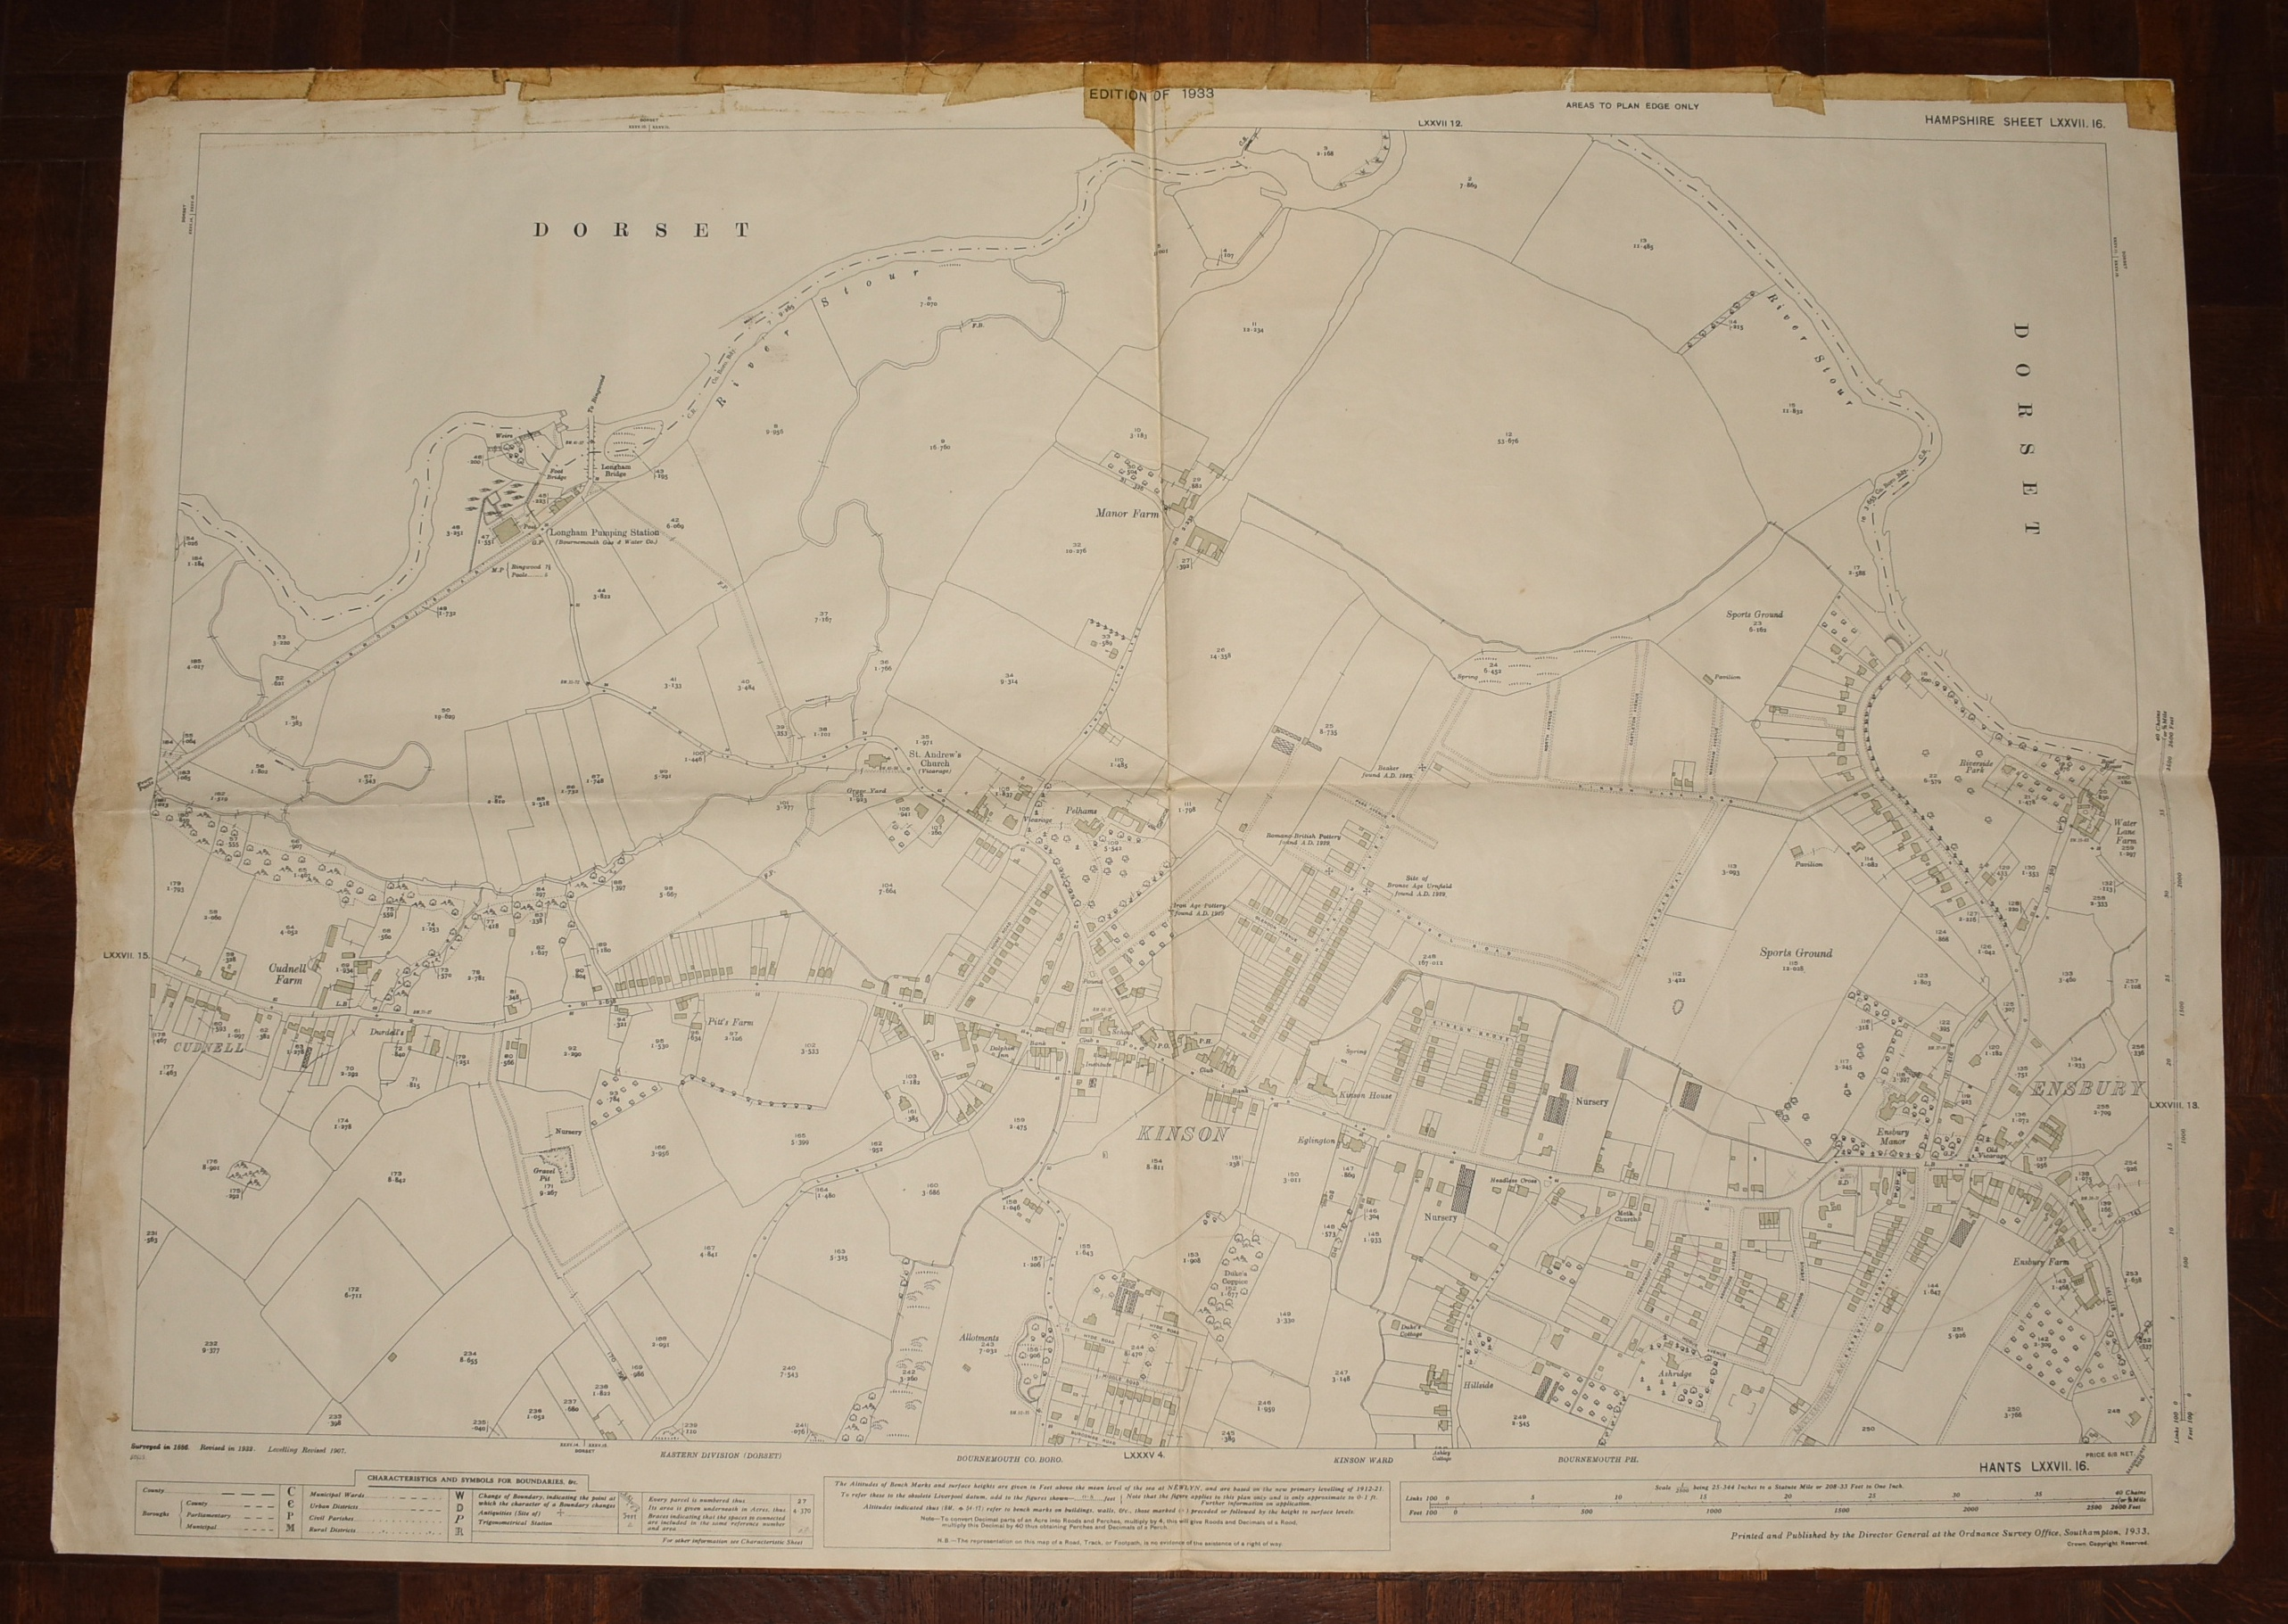 Image for LARGE Ordnance Survey MAP Sheet LXXVII.16 DORSET. North Bournemouth Kinson Scale 1:2500 or 25.344 inches to 1 mile.